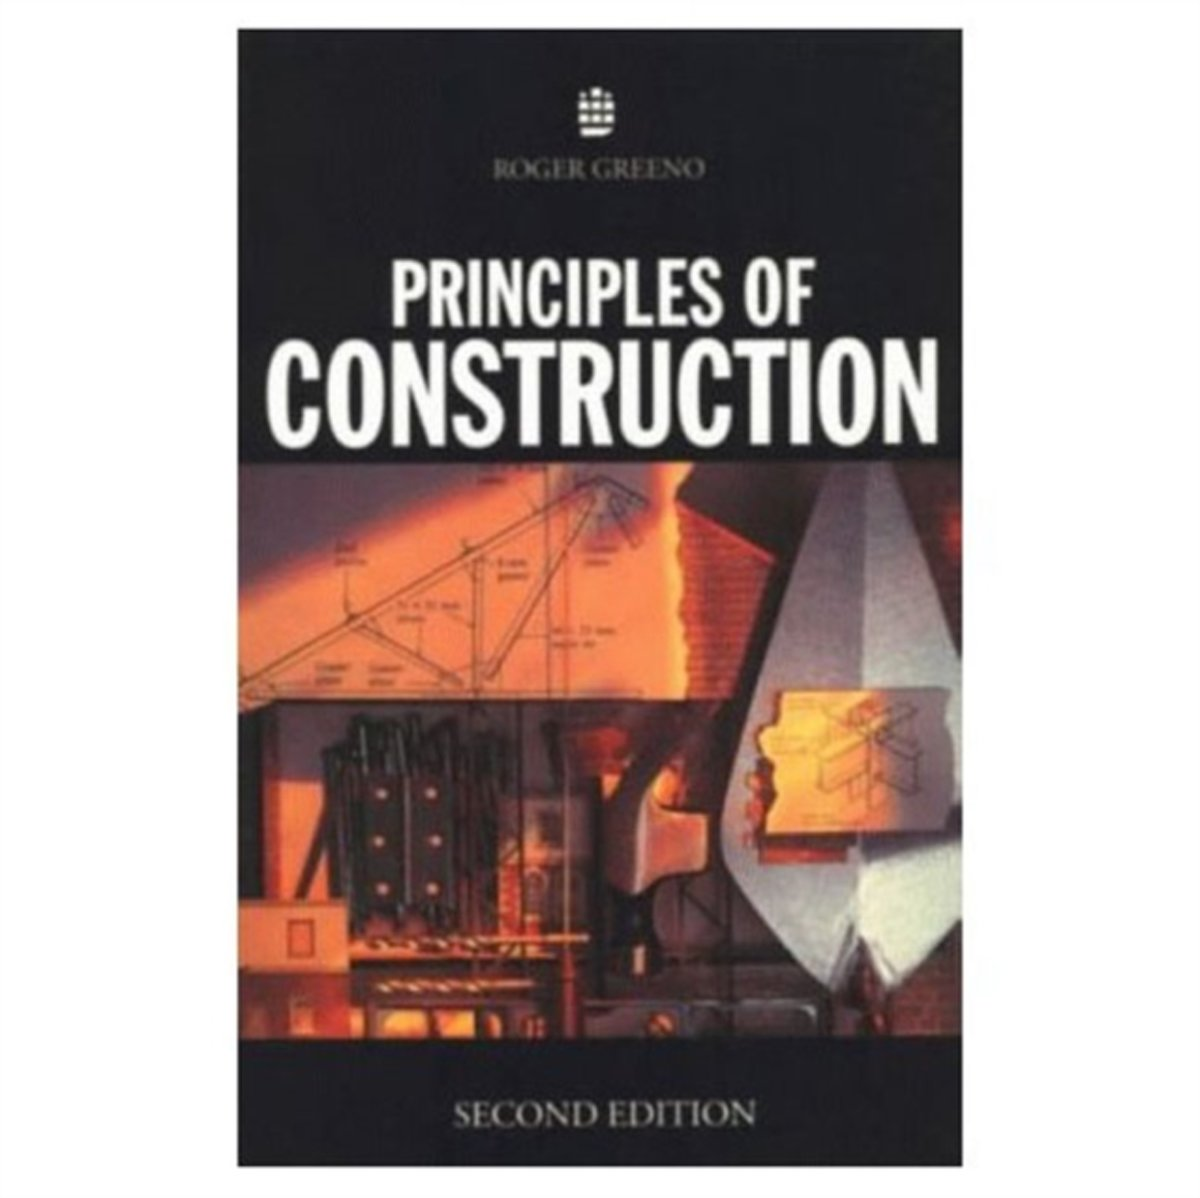 Principles of Construction